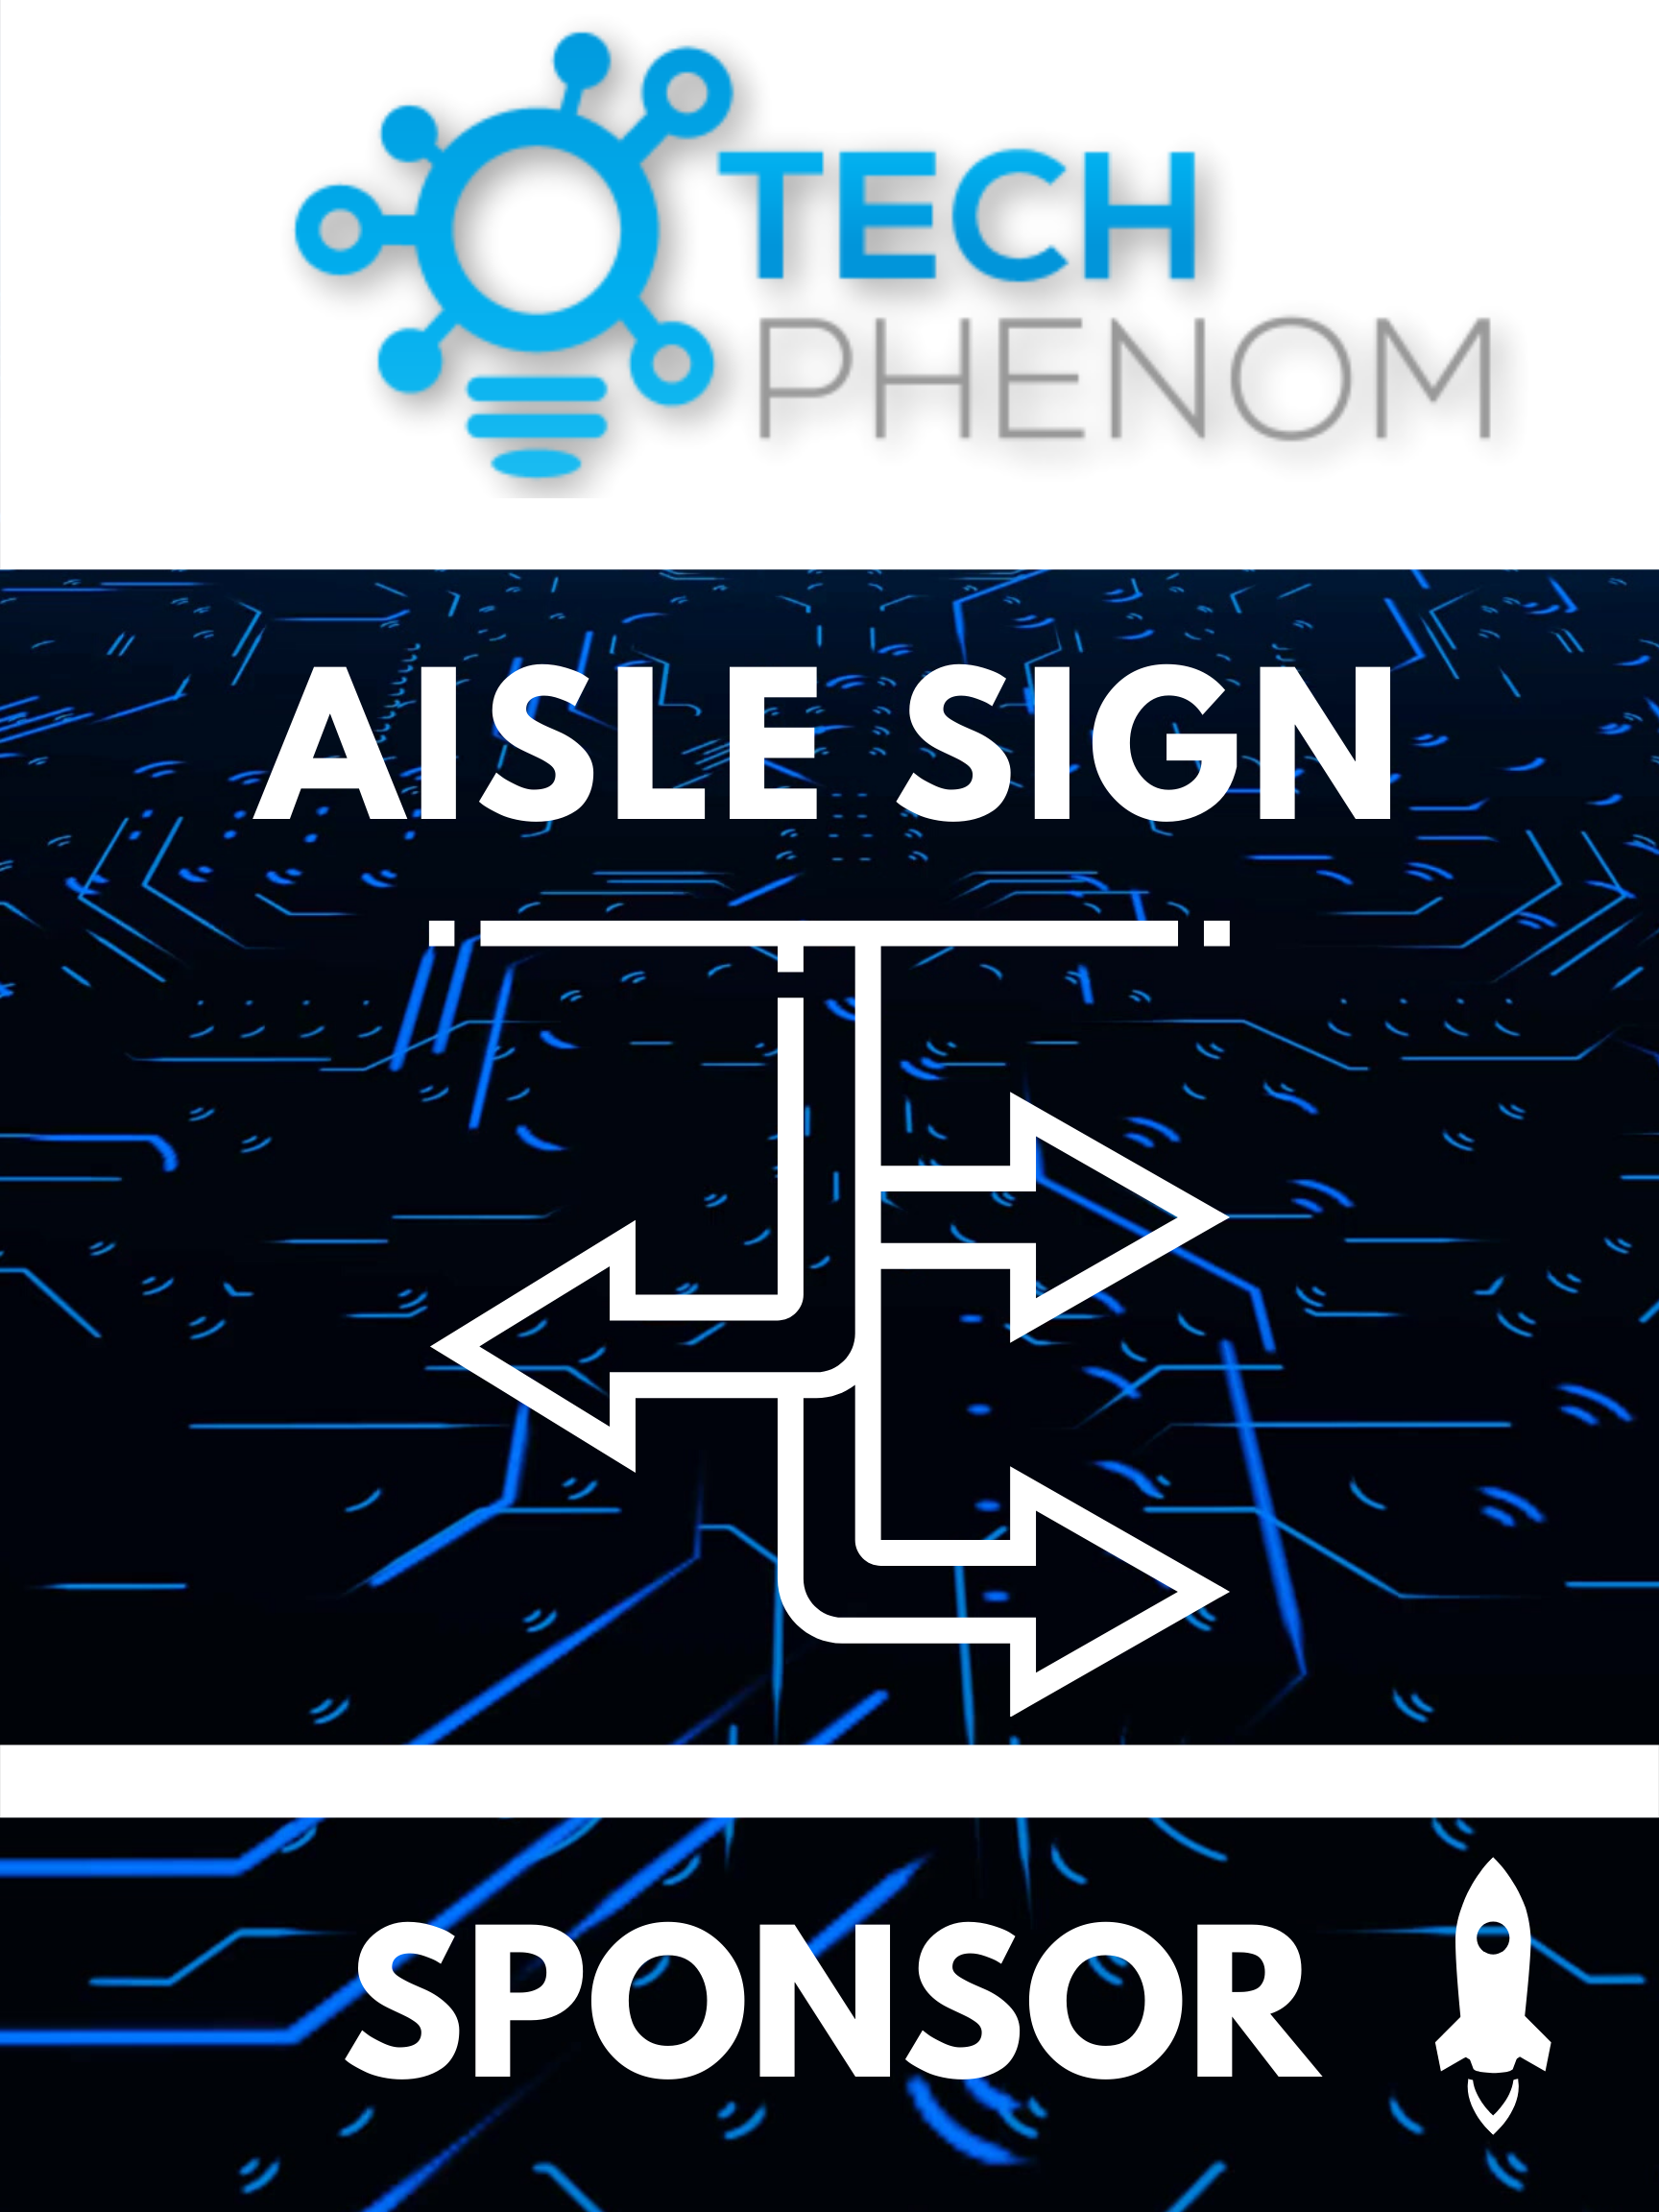 Tech Phenomenon Aisle Sign Sponsor